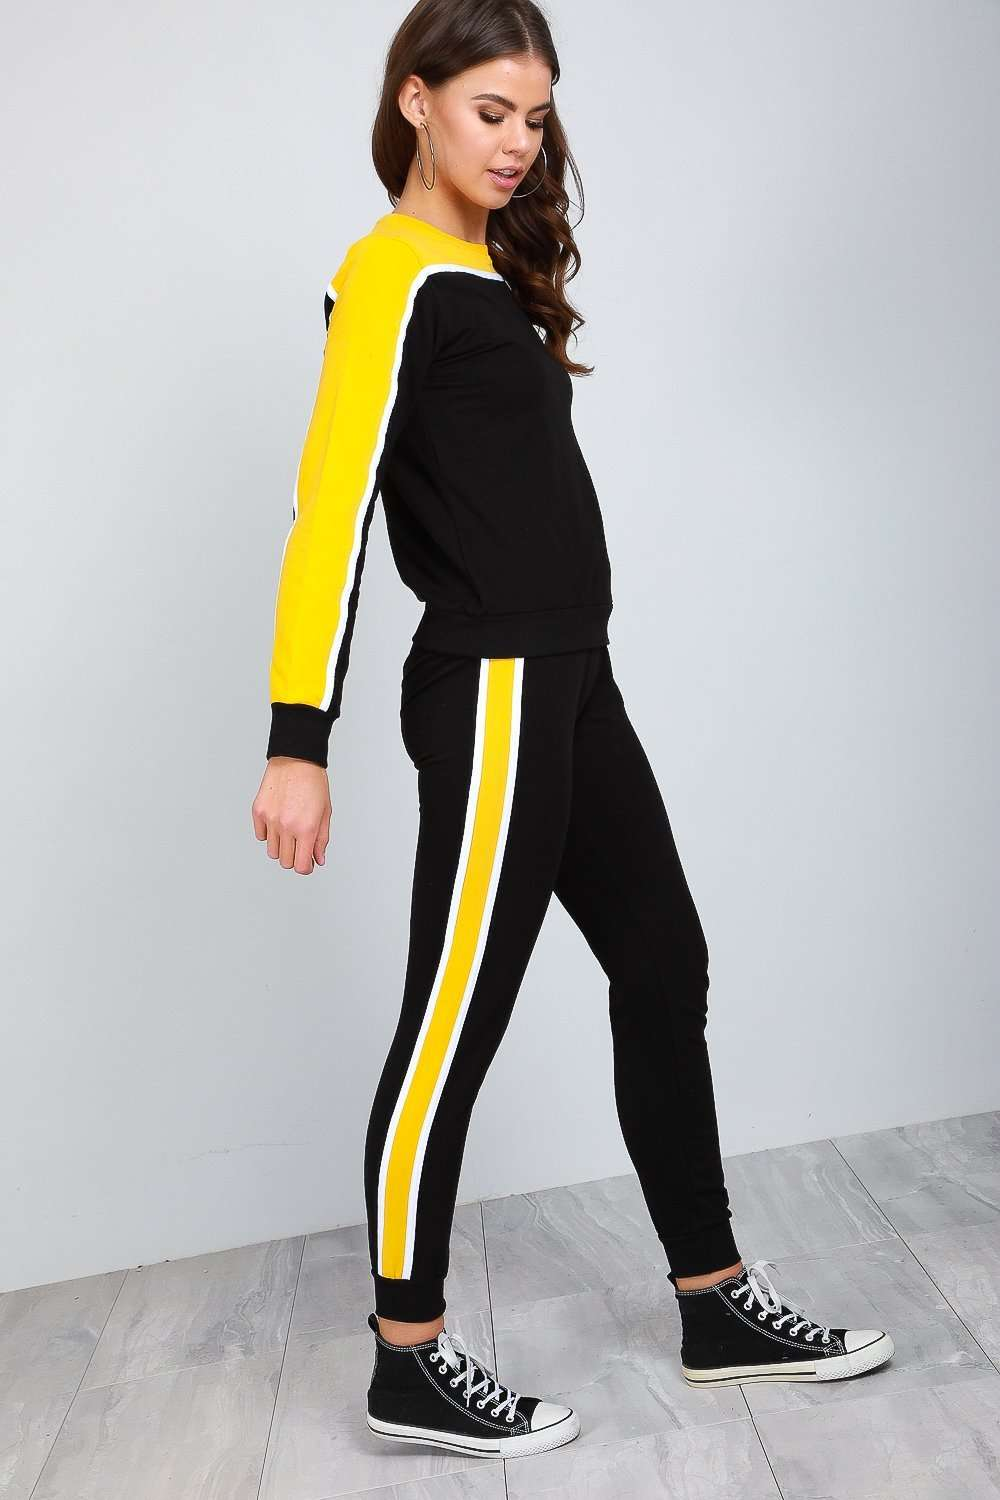 Paris Panel Striped Slim Tracksuit Set - bejealous-com